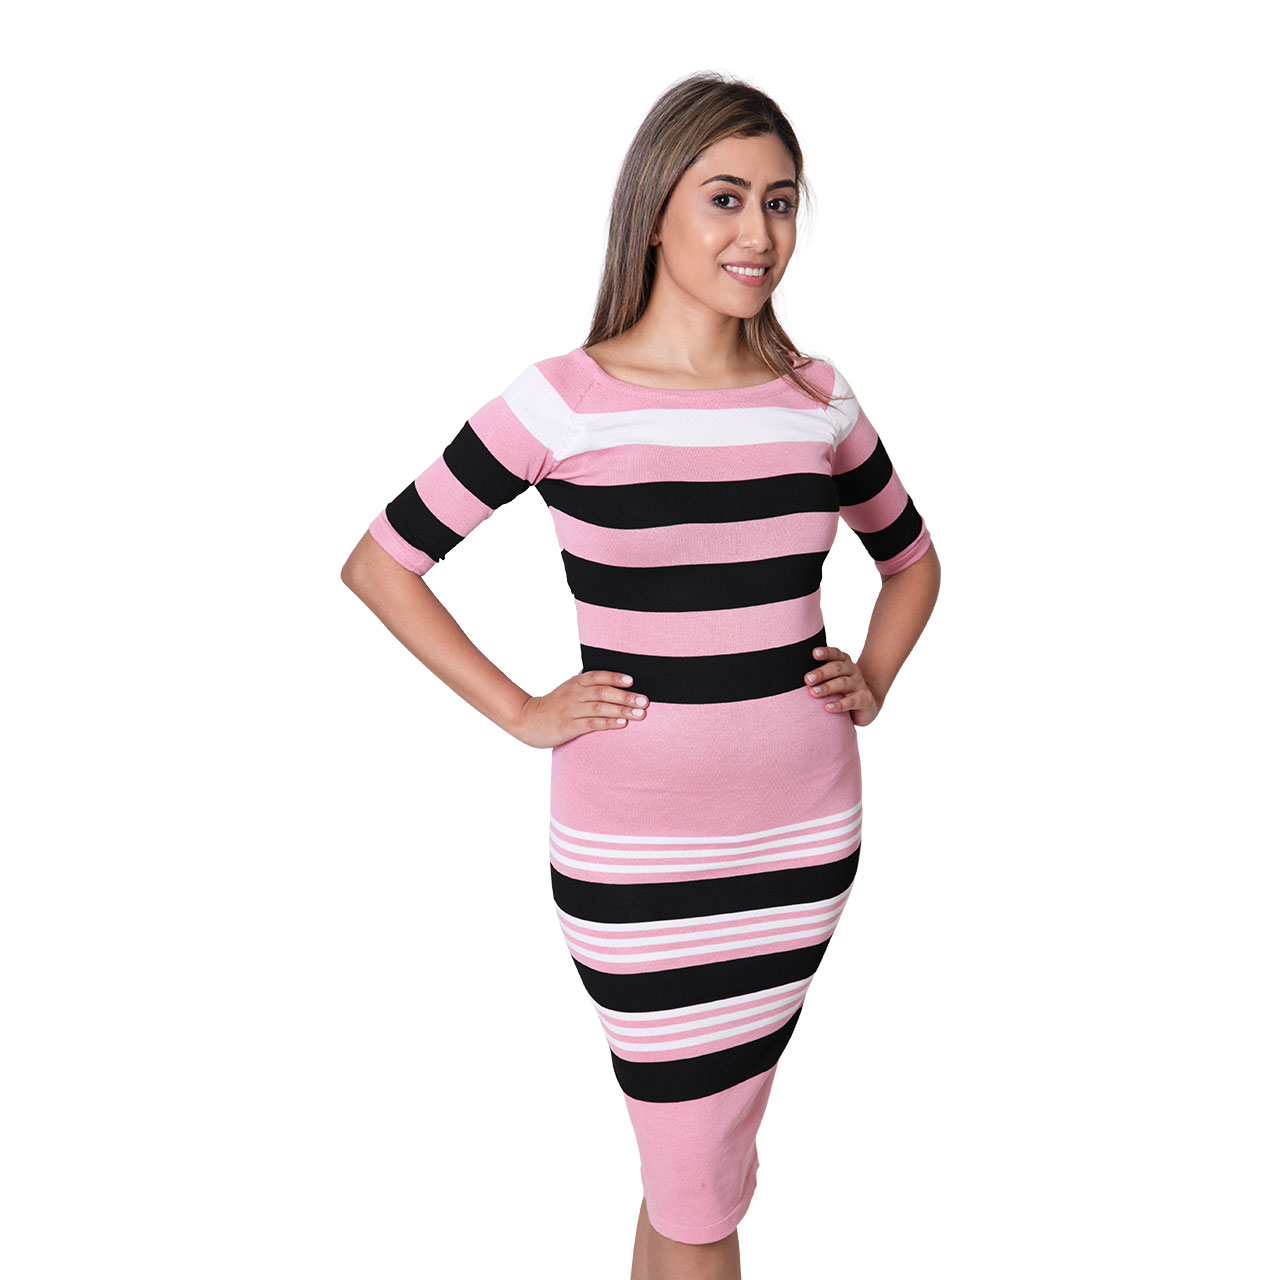 Pencil Fit Black And White Striped Light Pink Bodycon Dress For Women